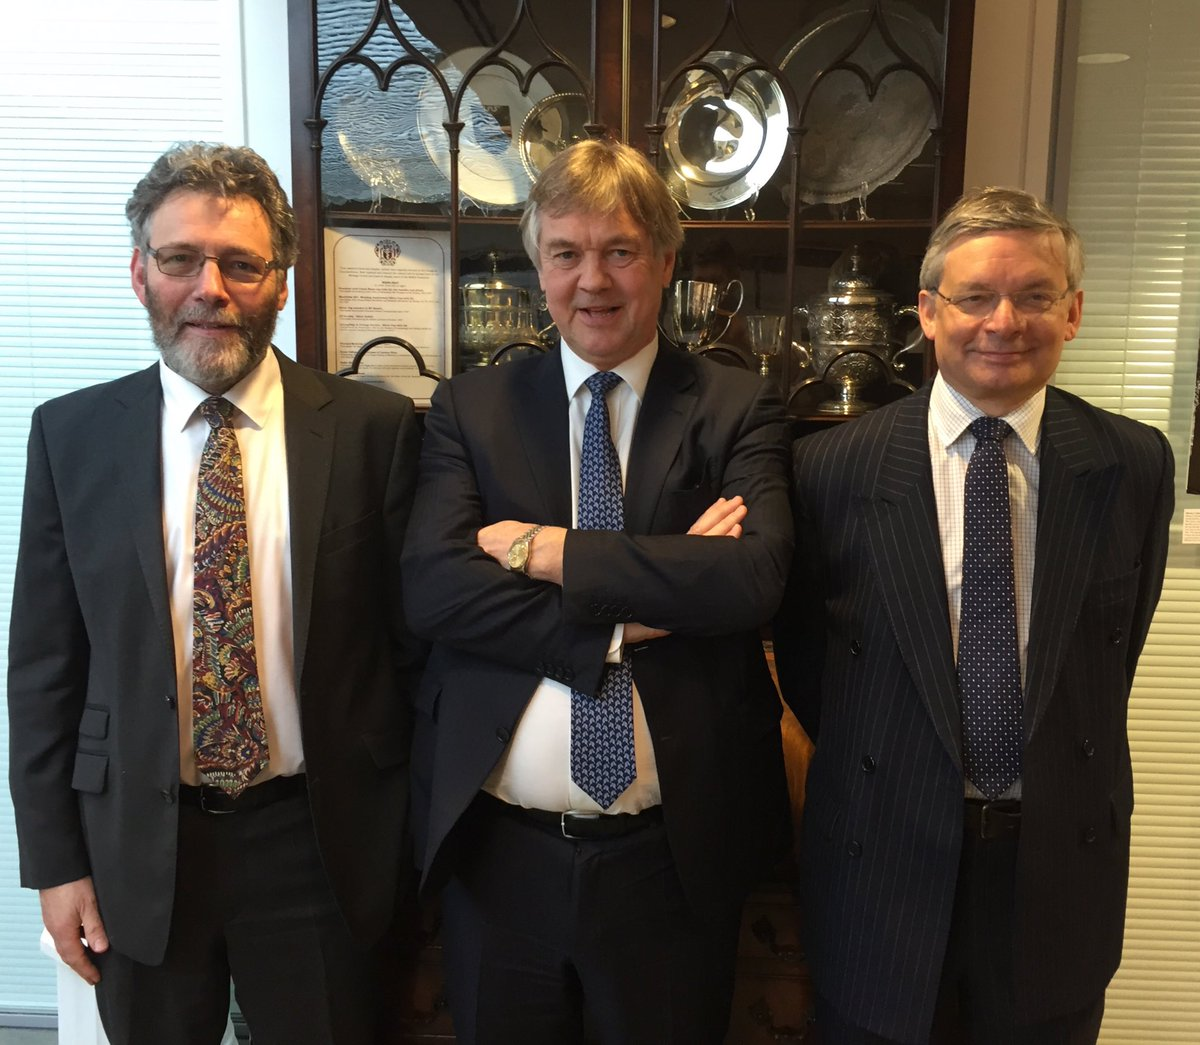 baus bausurology twitter past current and future roysocmed urology section presidents tom mcnicholas rogerkirby12 rolyrat1pic twitter com ucx5jsrxfw